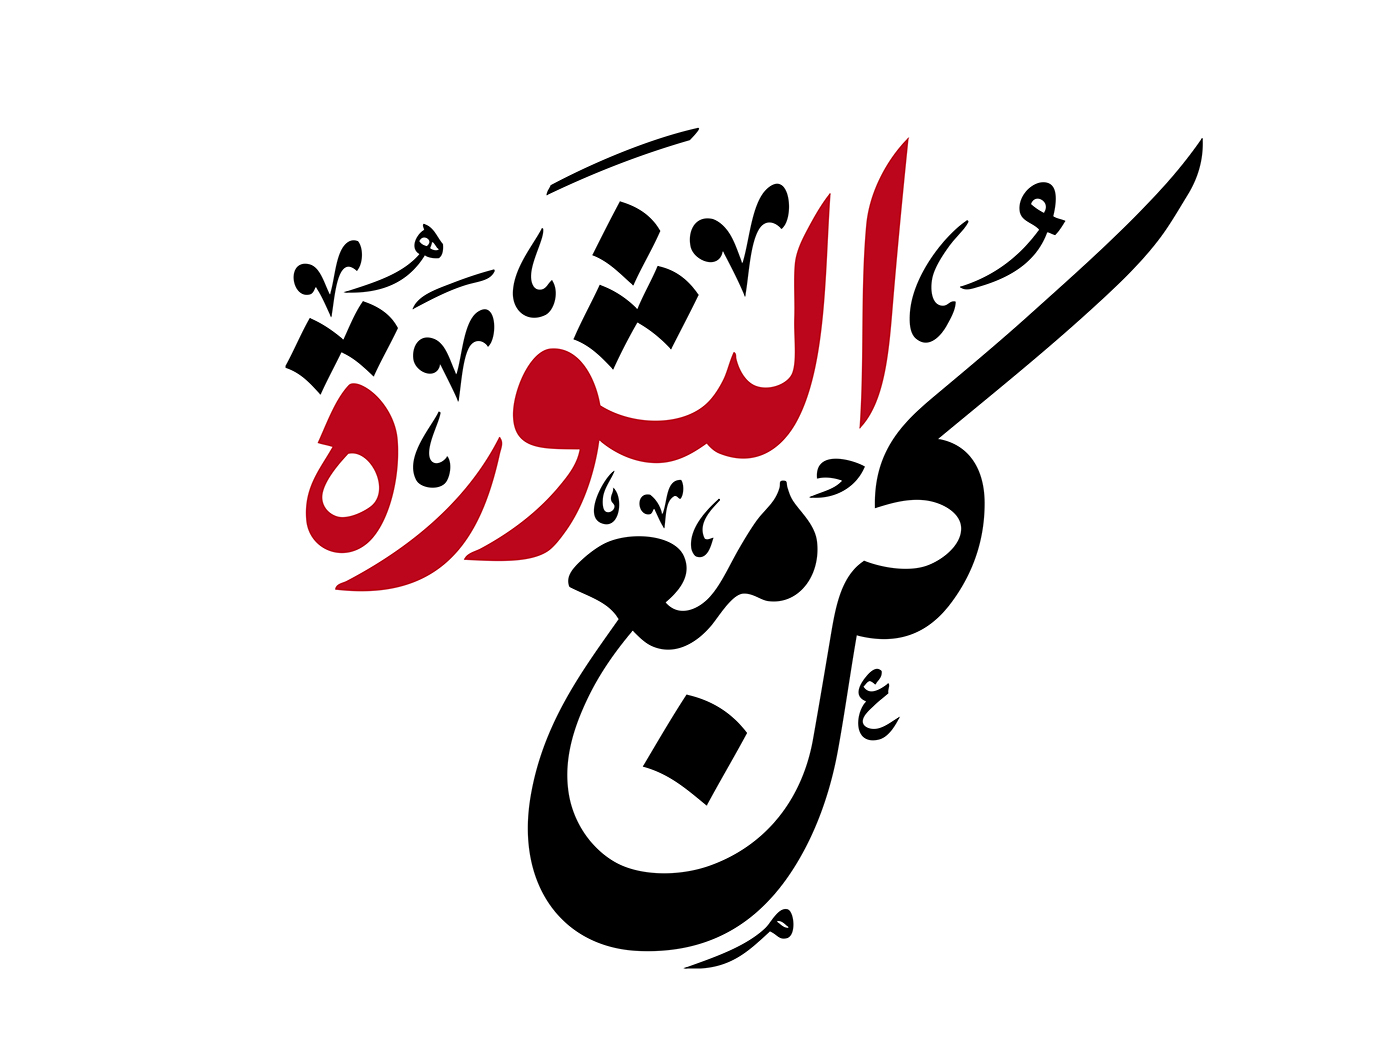 Be With The Revolution - كن مع الثورة